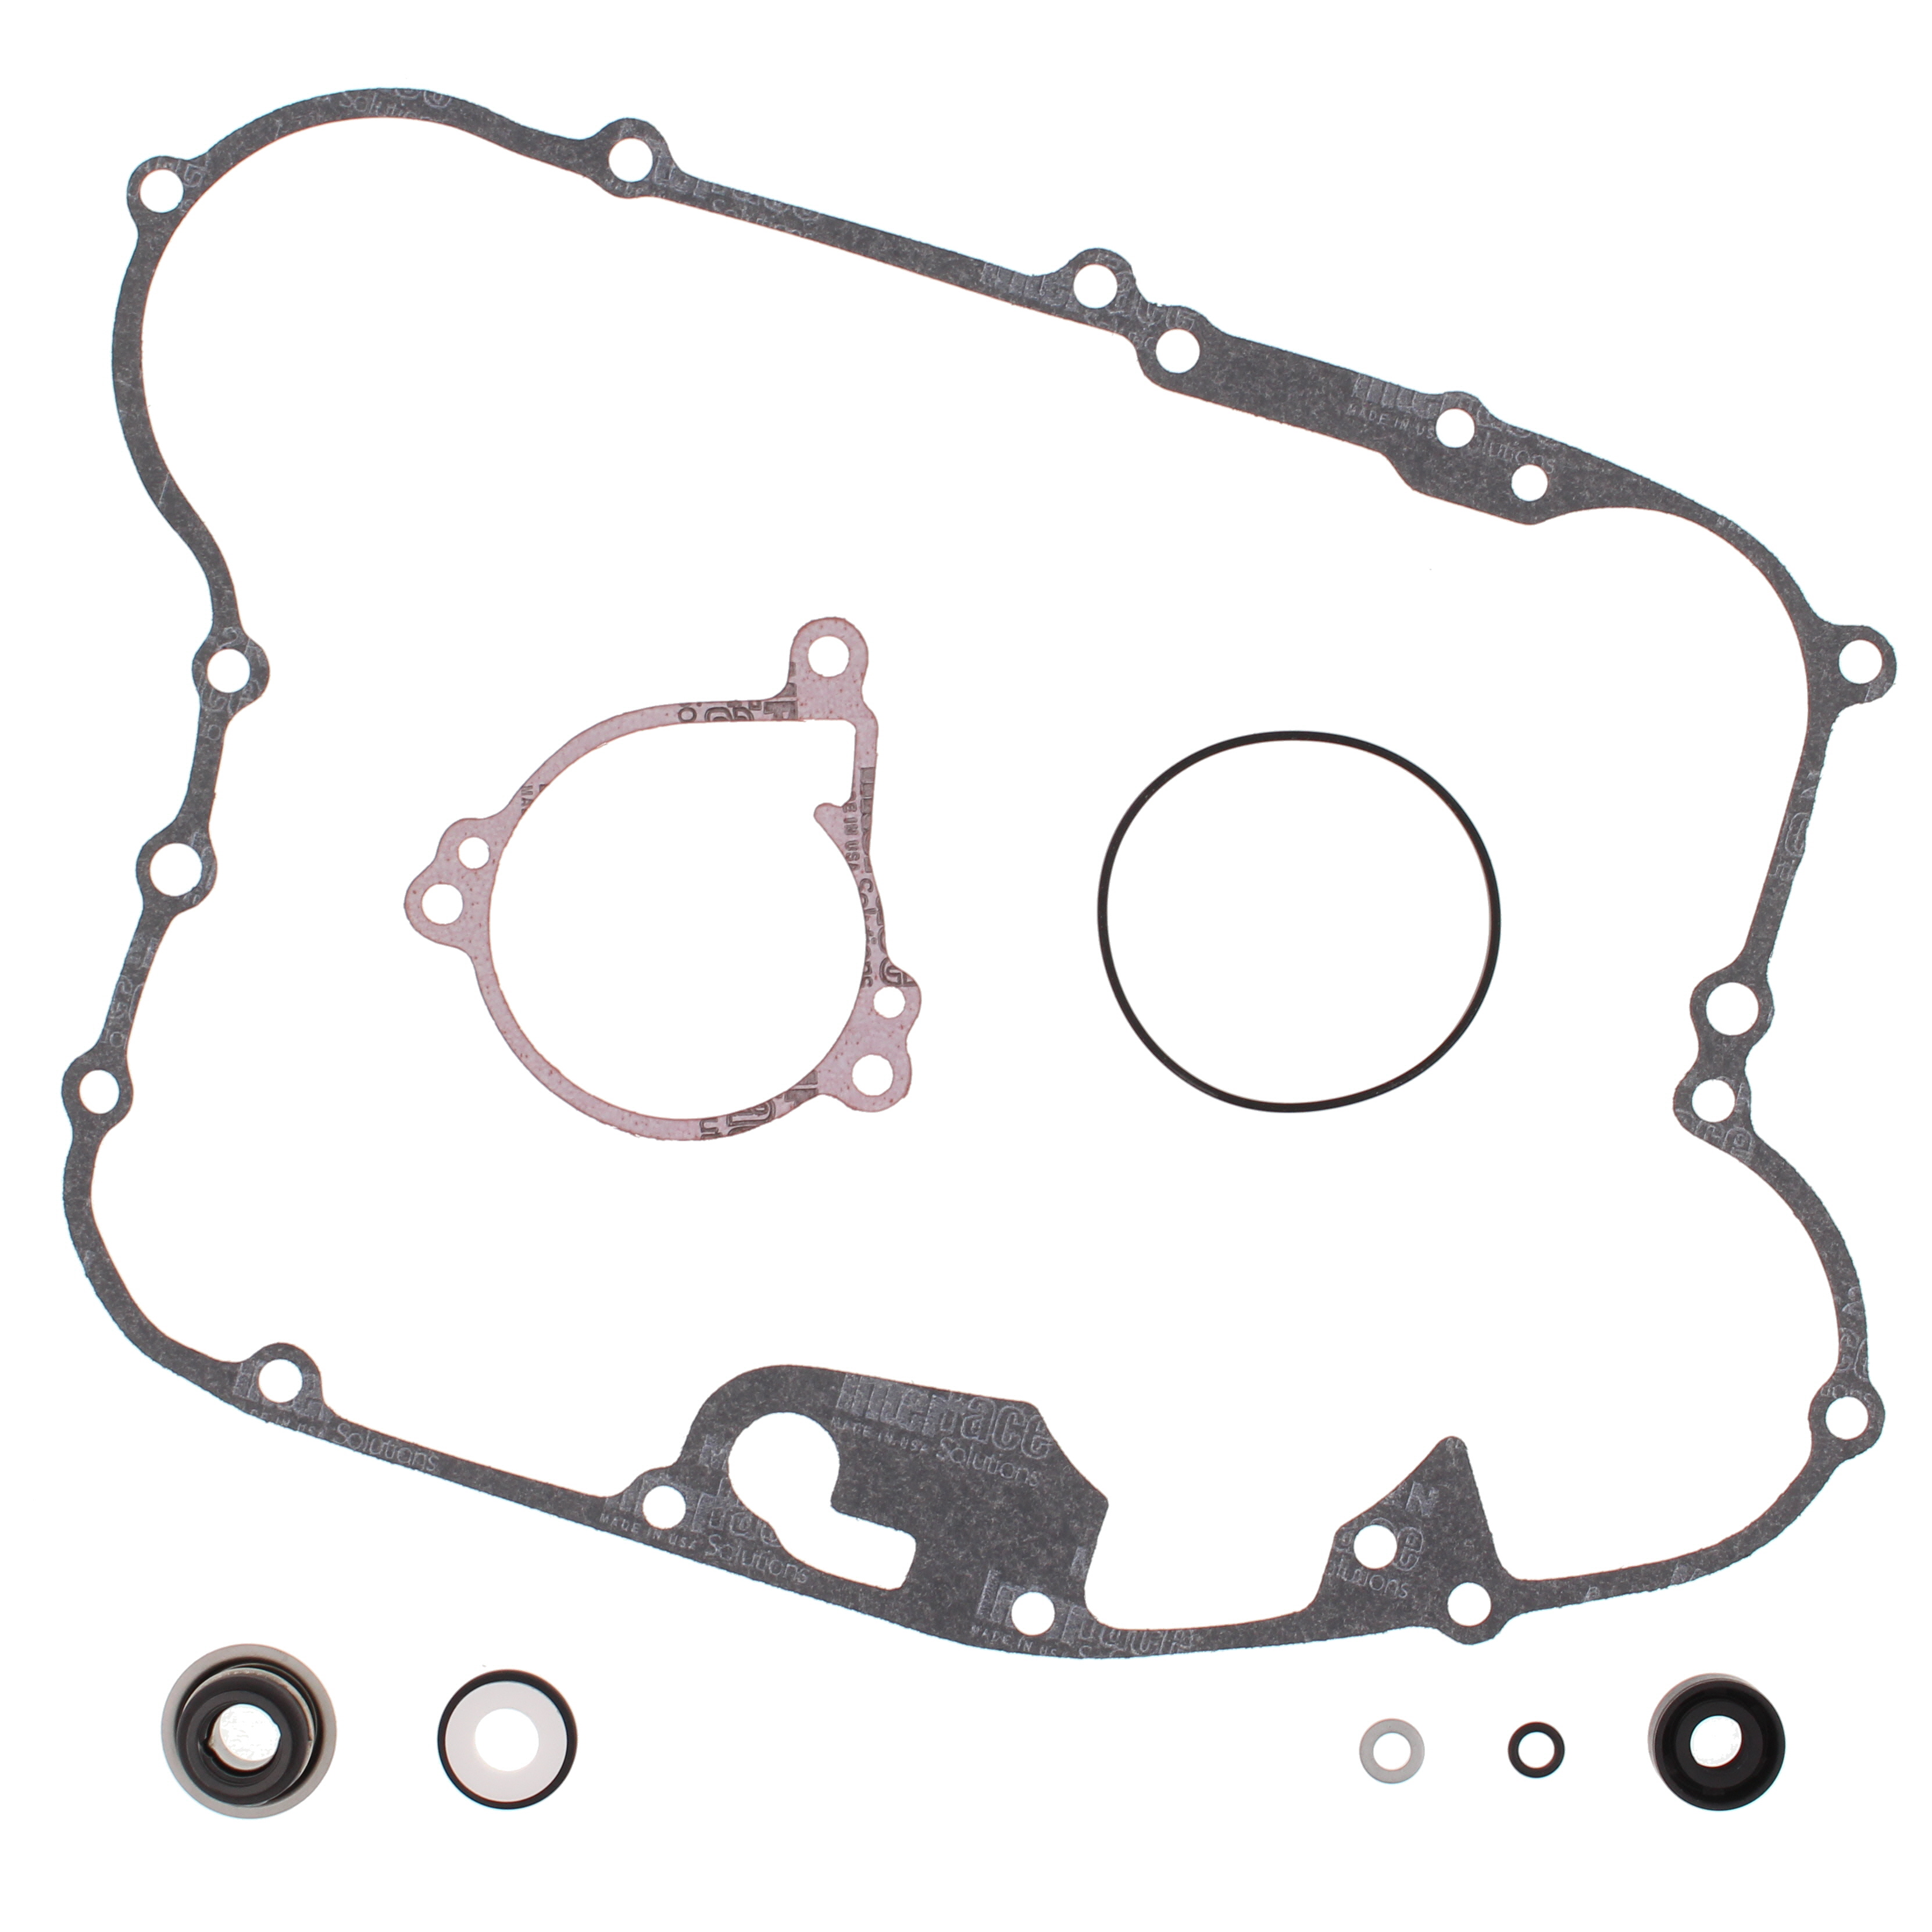 New Water Pump Rebuild Kit Kawasaki KLR250 250cc 1985-2005